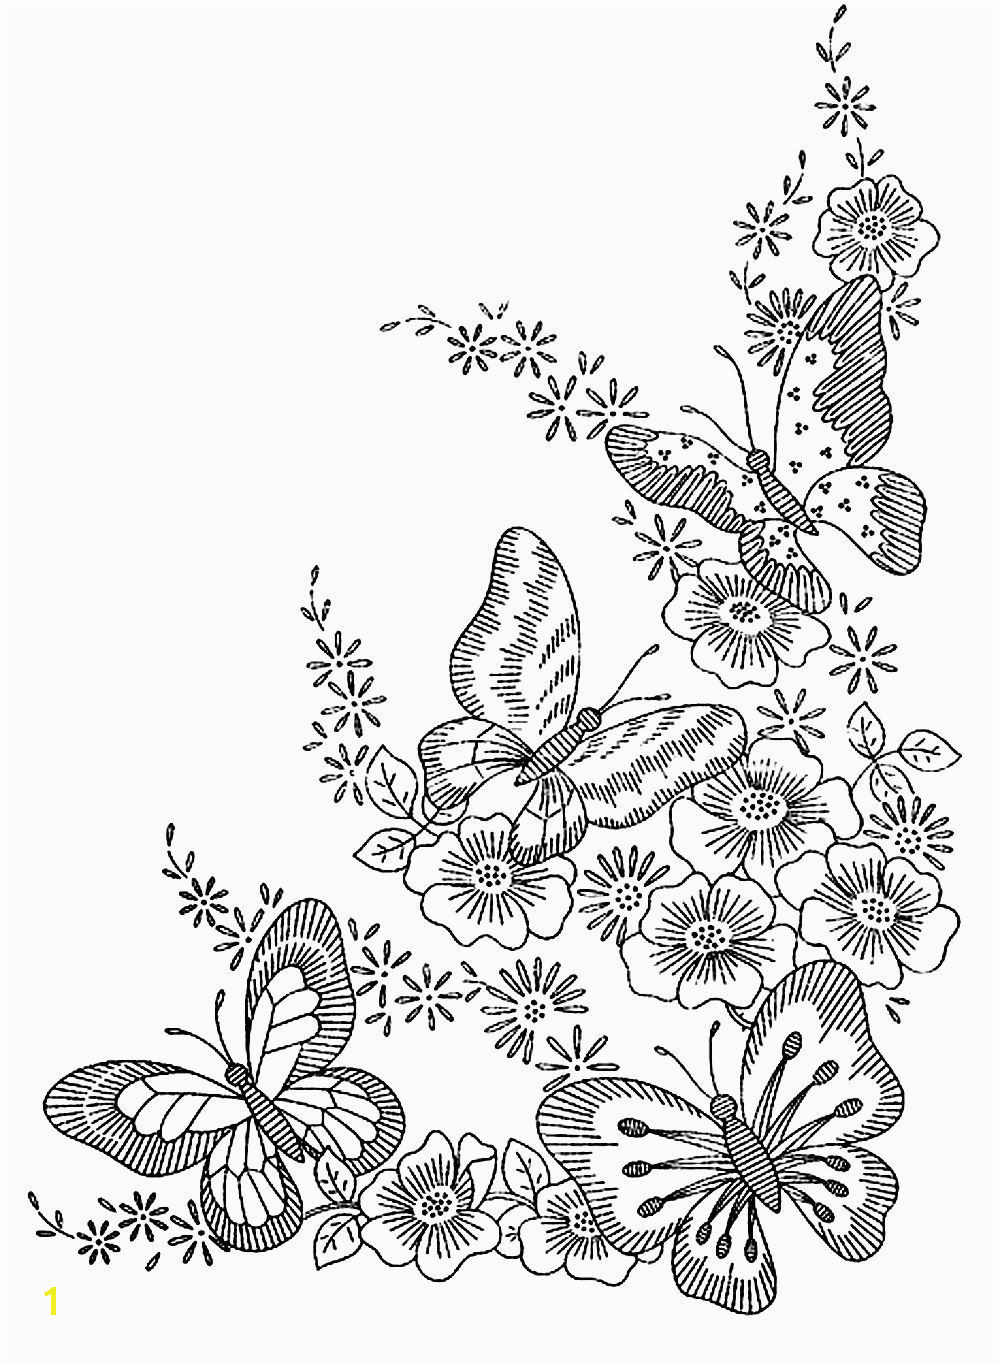 To print this free coloring page coloring adult difficult butterflies click on the printer icon at the right